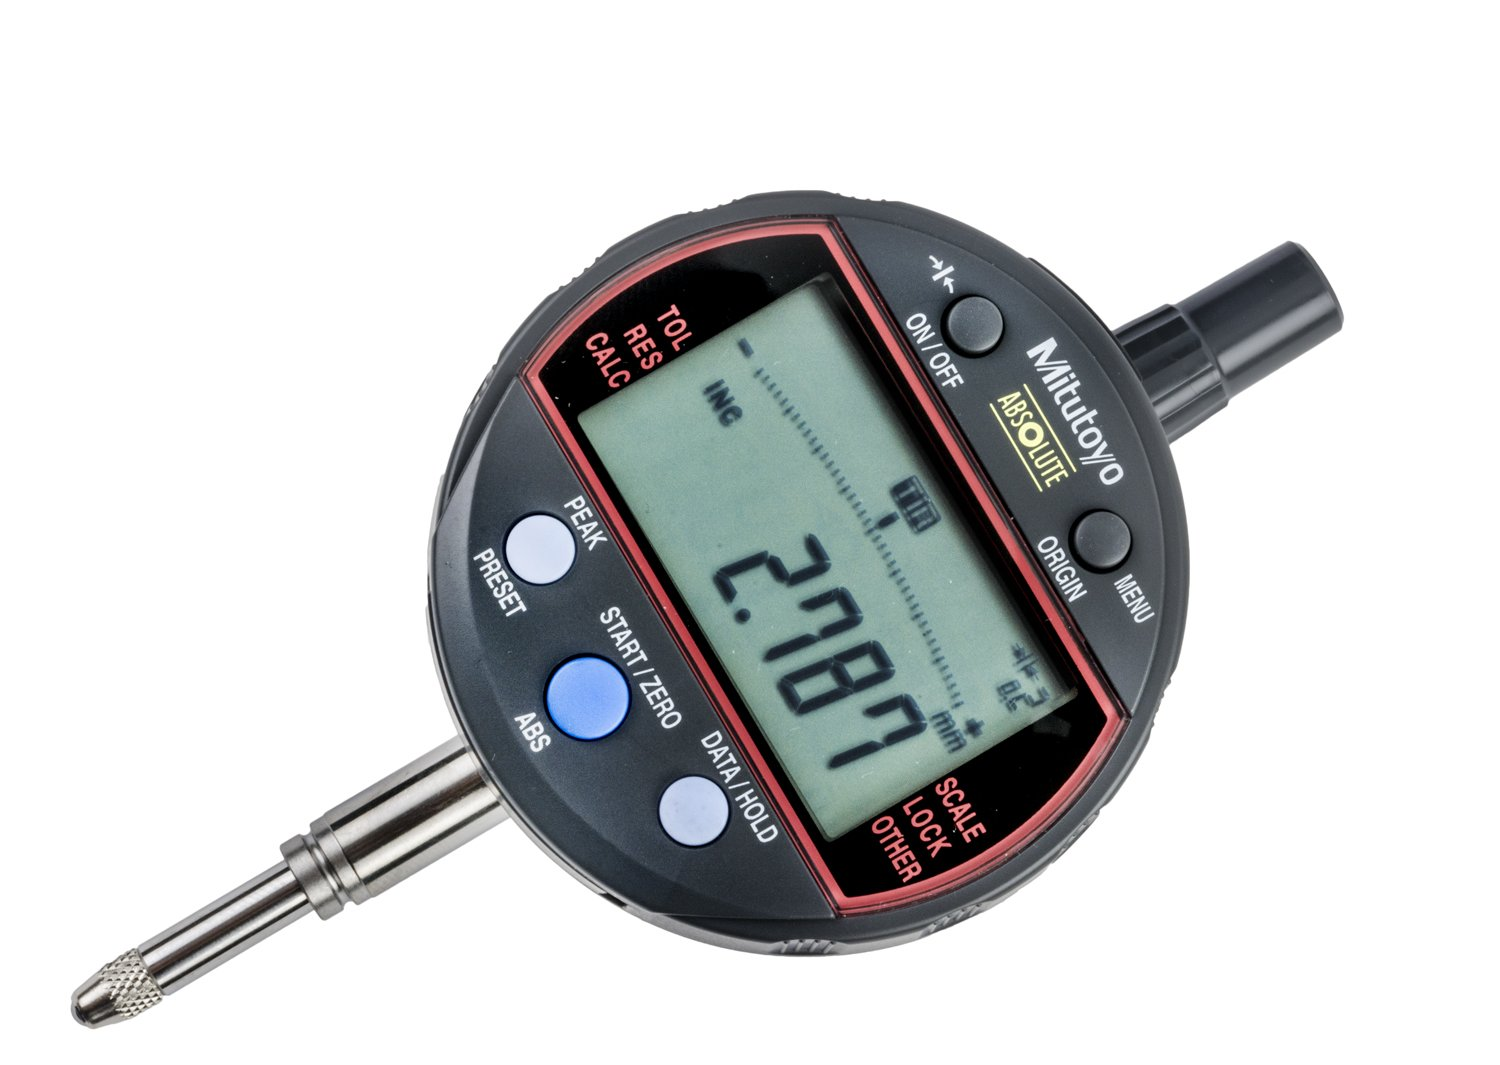 Mitutoyo 543-340B Calculation Type Indicator mm 8 Stem 12.7 Max 66% OFF Colorado Springs Mall